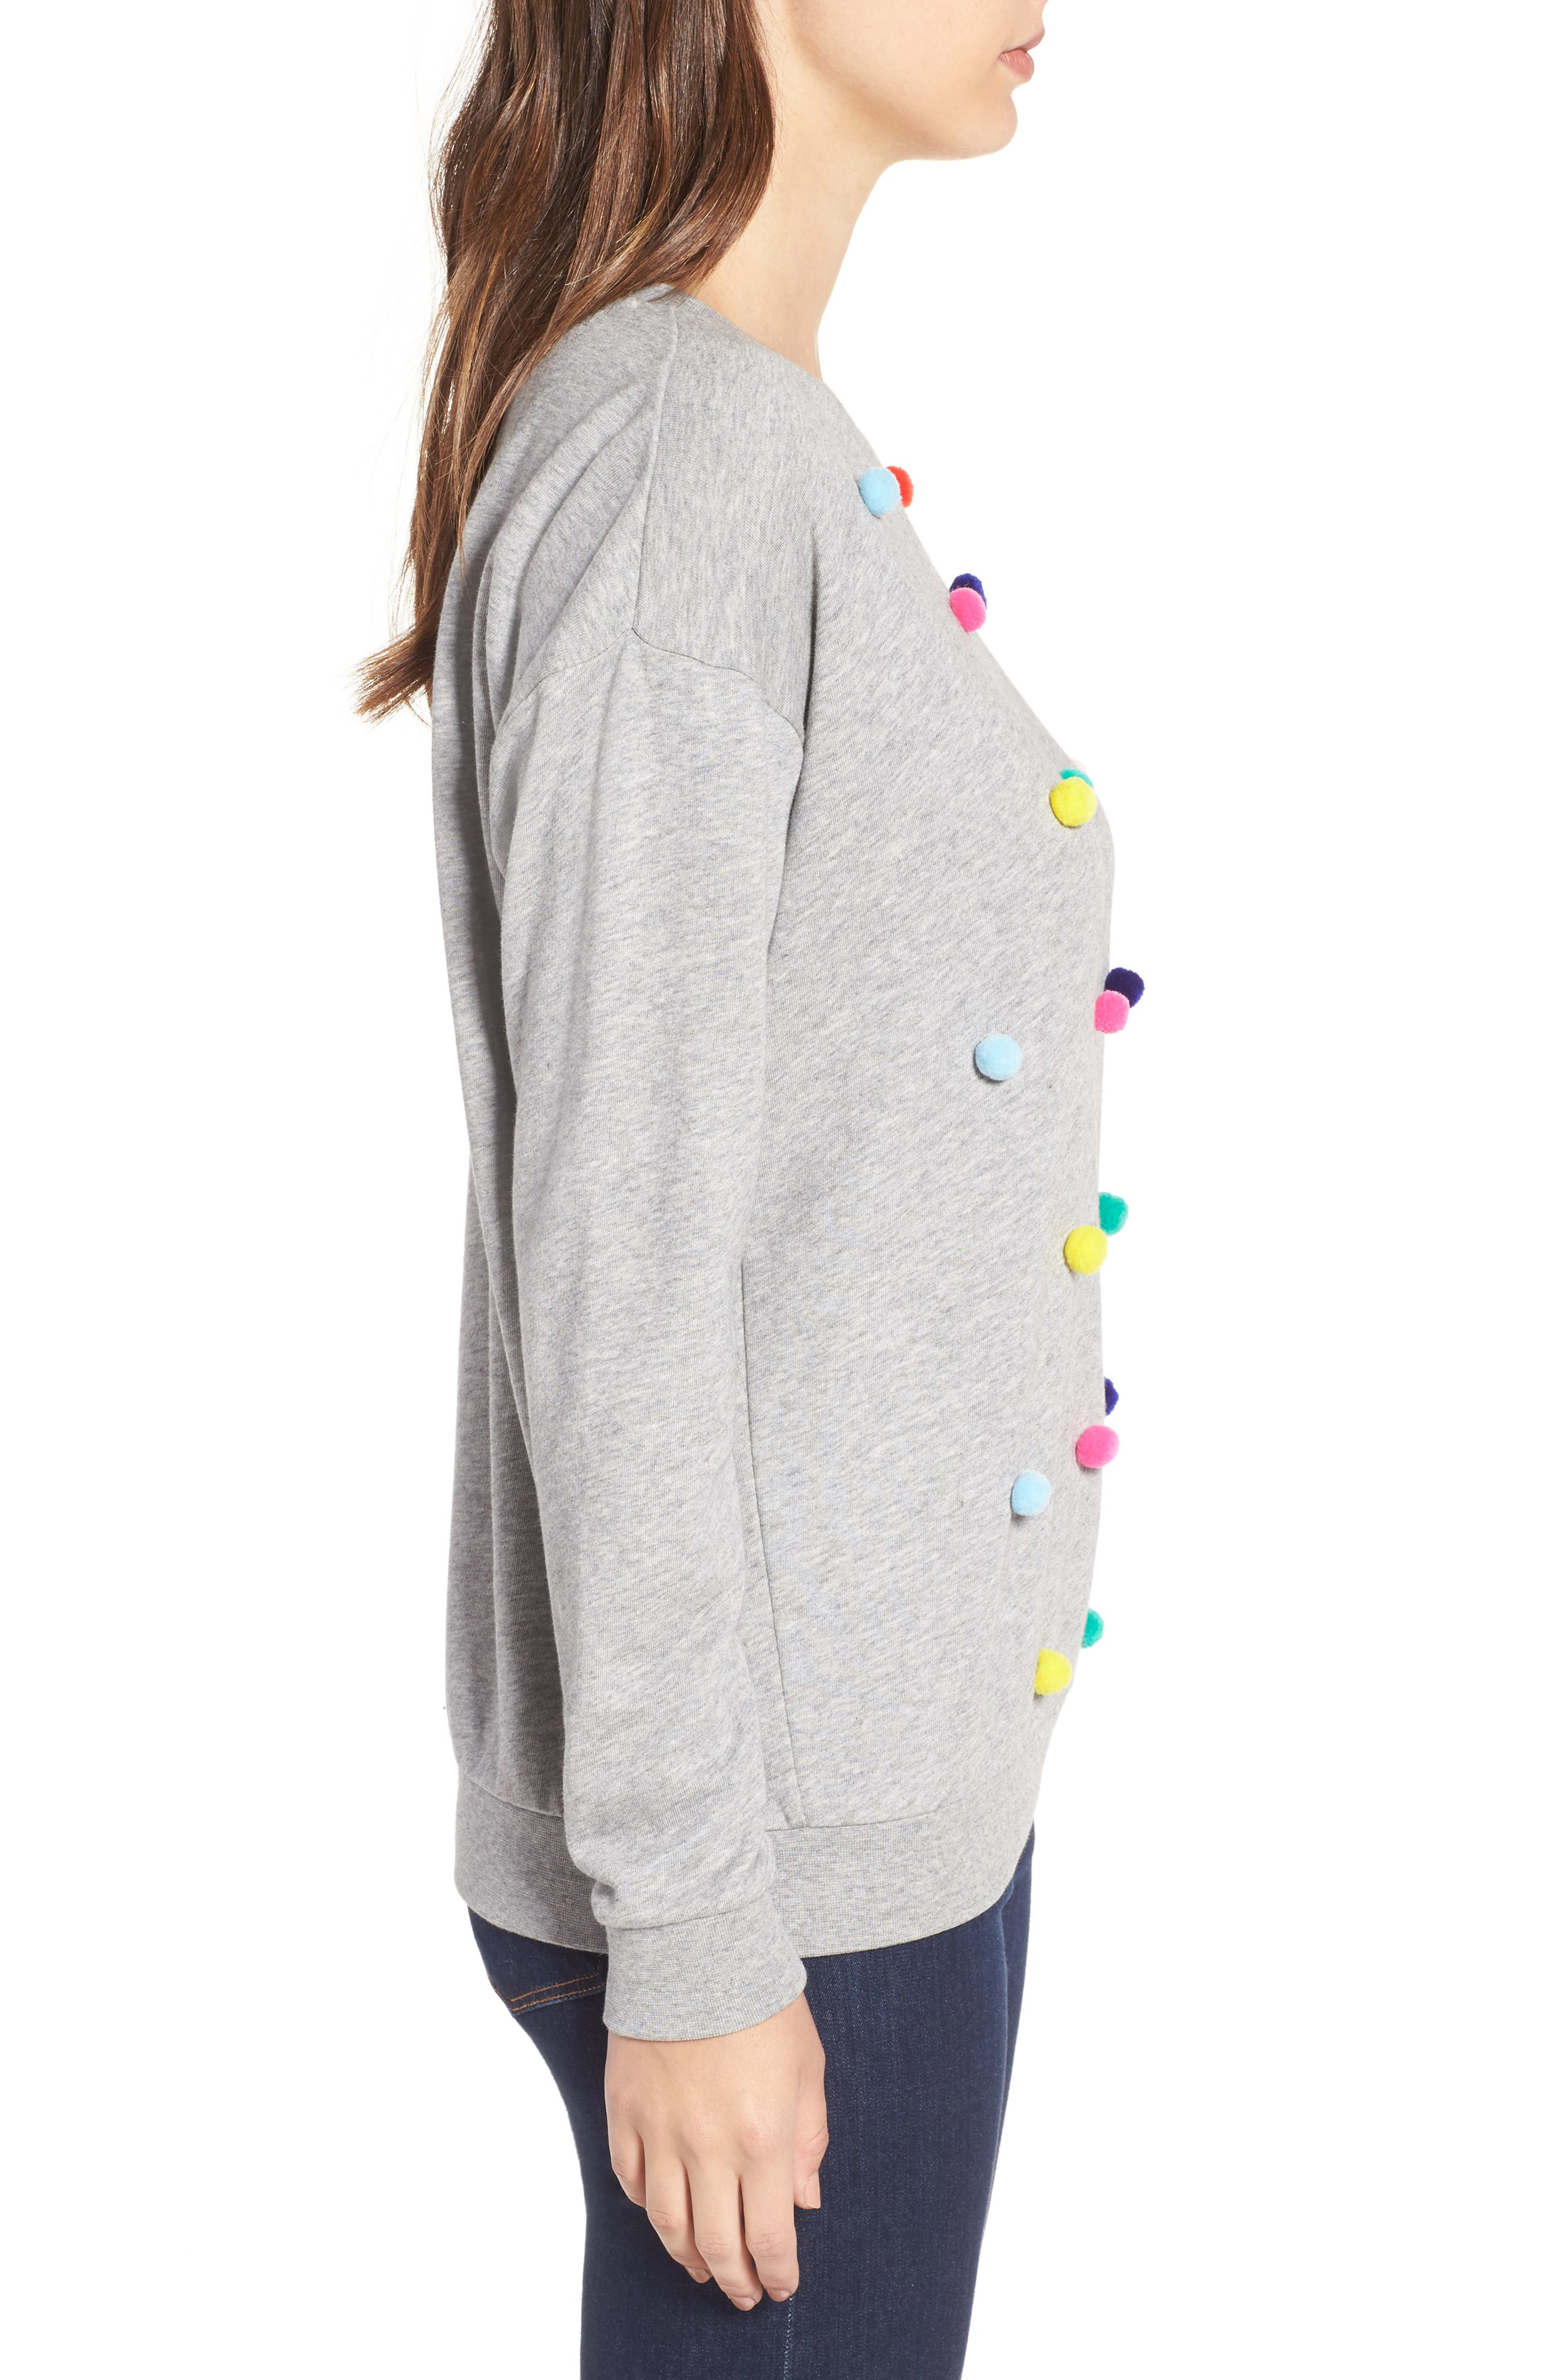 Pompom Sweatshirt,                             Alternate thumbnail 3, color,                             020